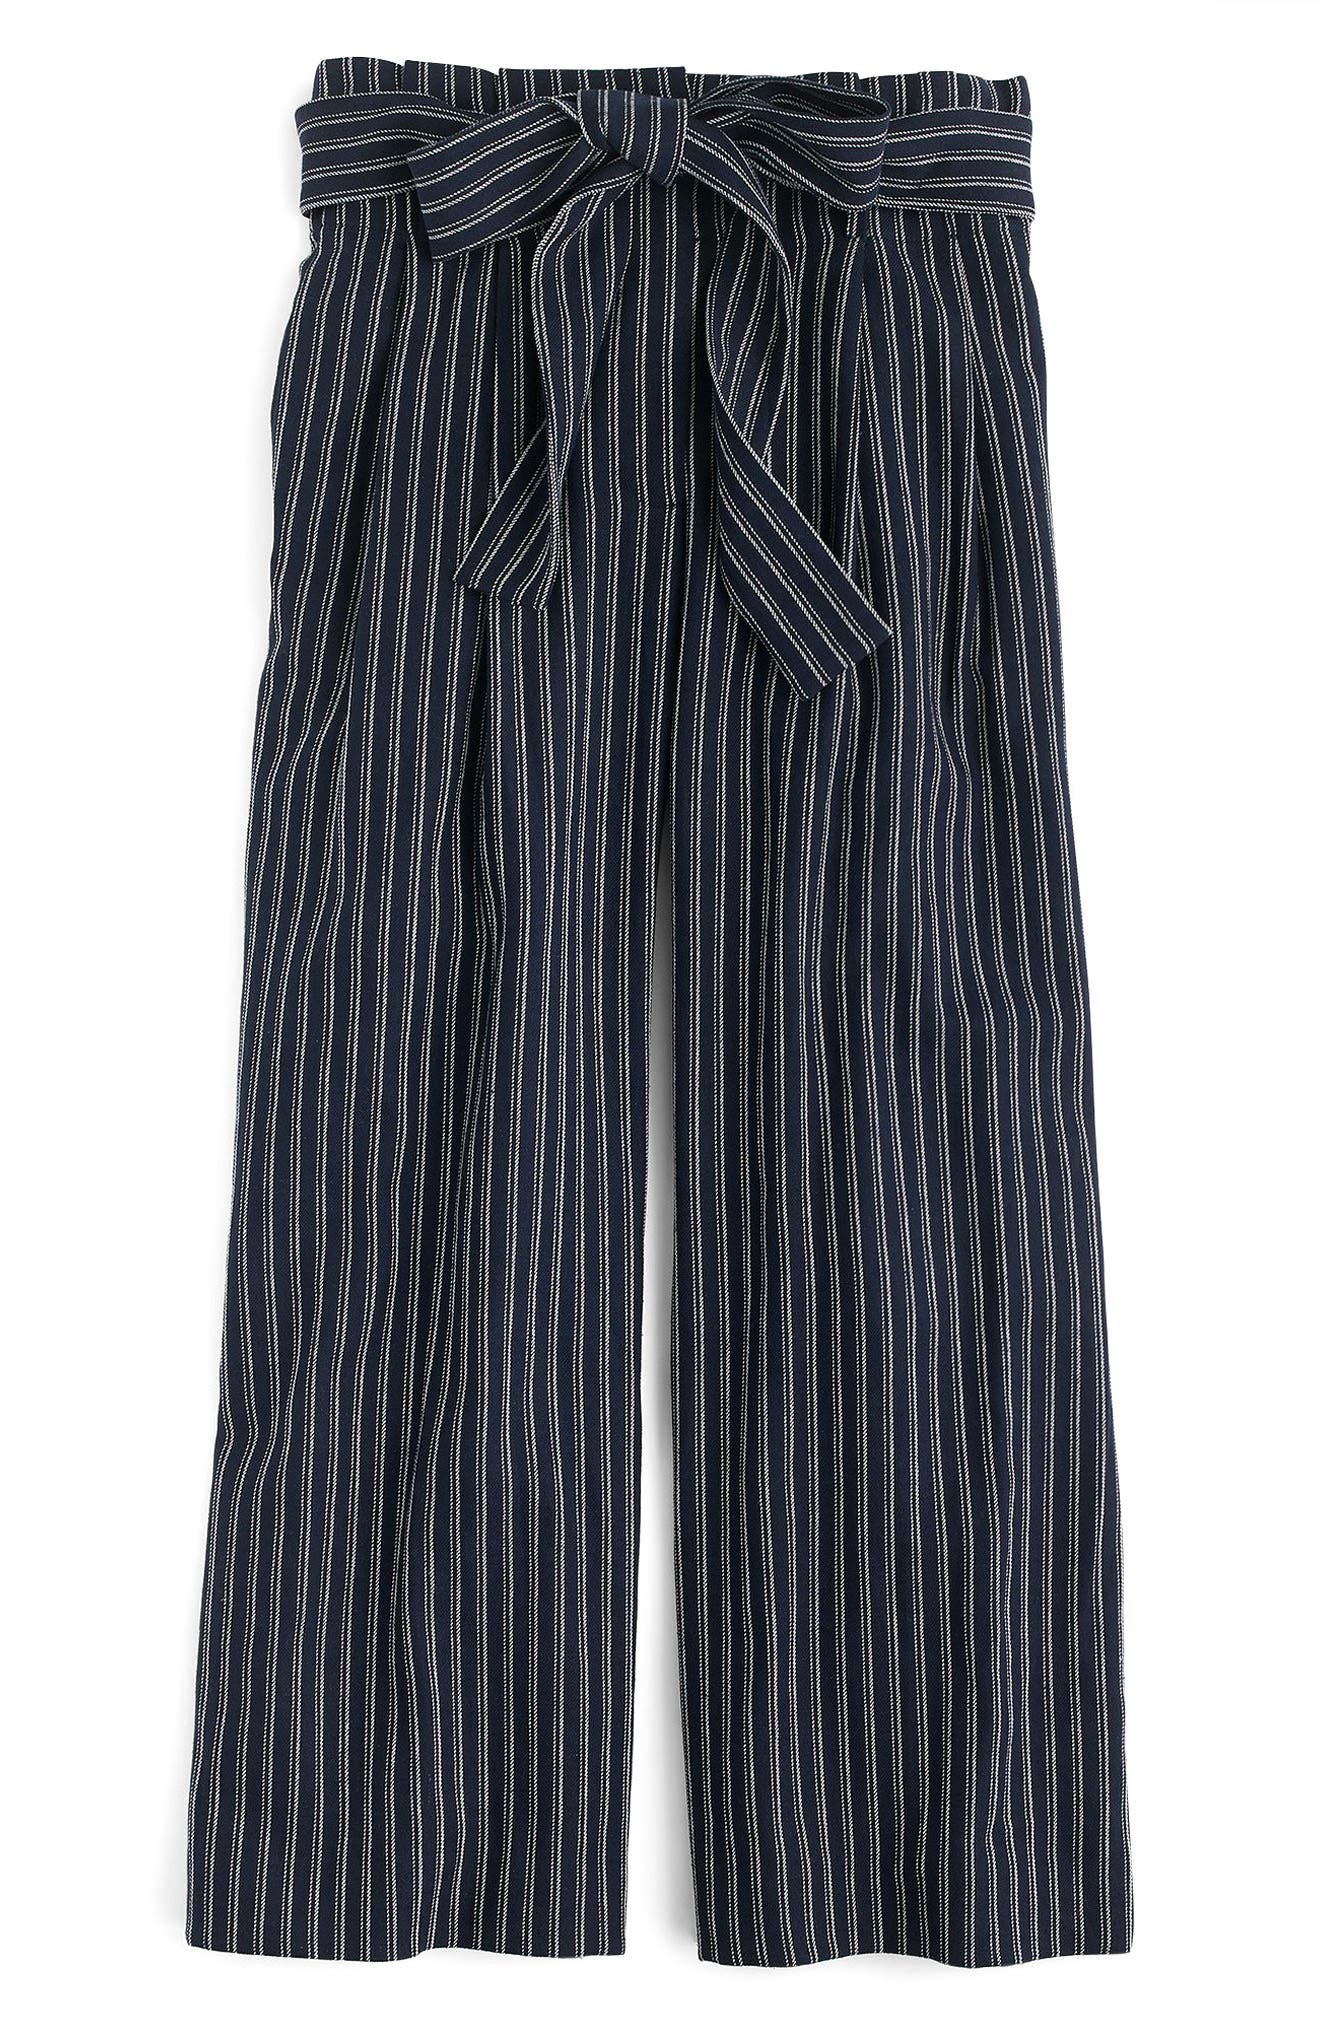 Point Sur Paperbag Pants,                             Alternate thumbnail 4, color,                             Navy White Stripe